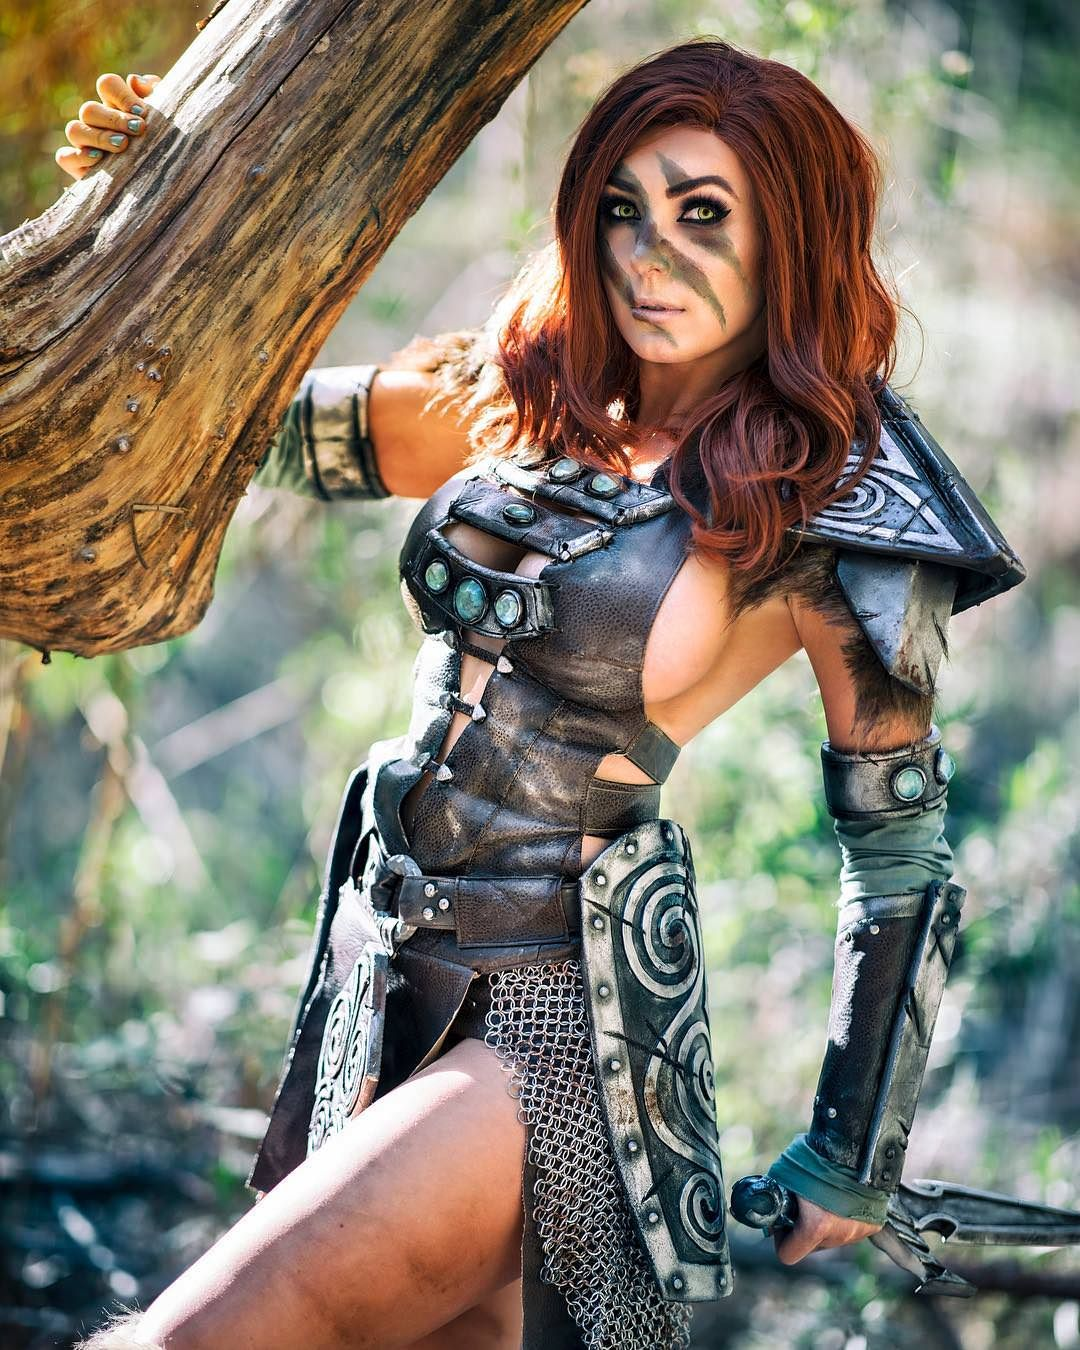 Aela the huntress from skyrim jessica nigri news